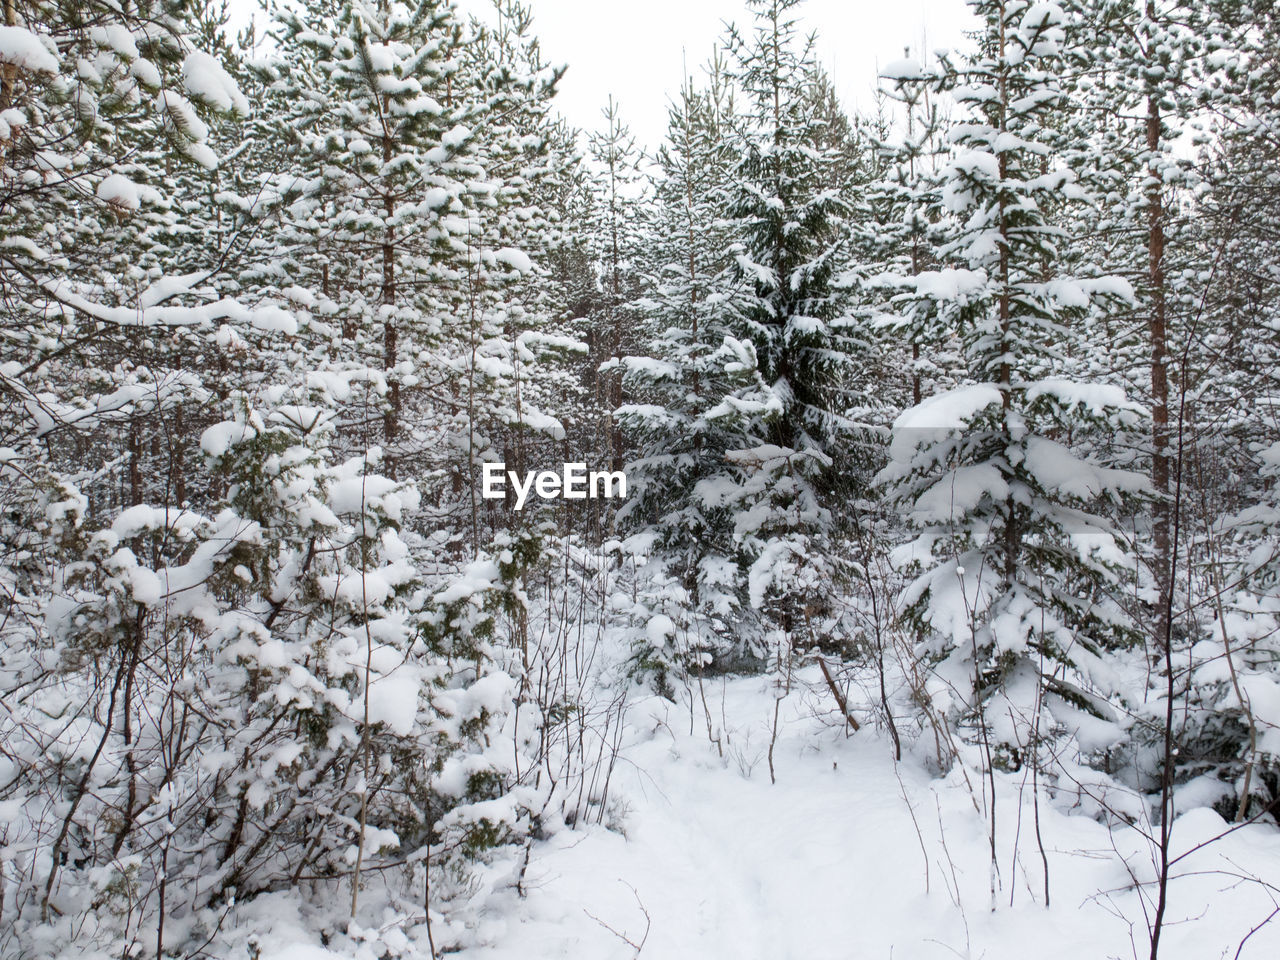 Trees And Field Covered With Snow In Forest